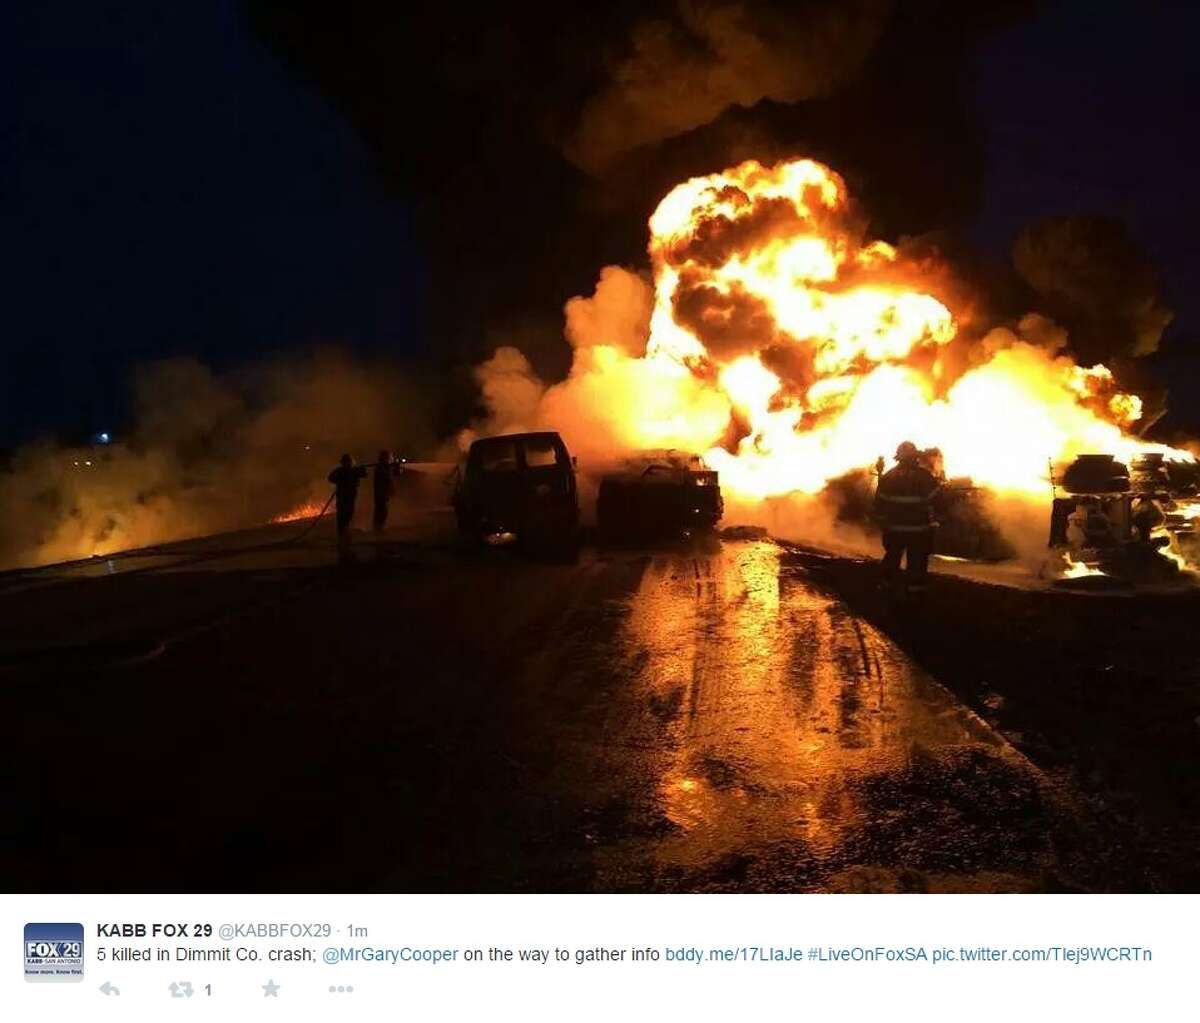 Five men died Thursday morning in a fiery four-car crash in South Texas. Texas Department of Public Safety Trooper Maria Loredo said the crash happened on U.S. 83 in Dimmit County, about 115 miles south of San Antonio. Photo via @KABBFOX29